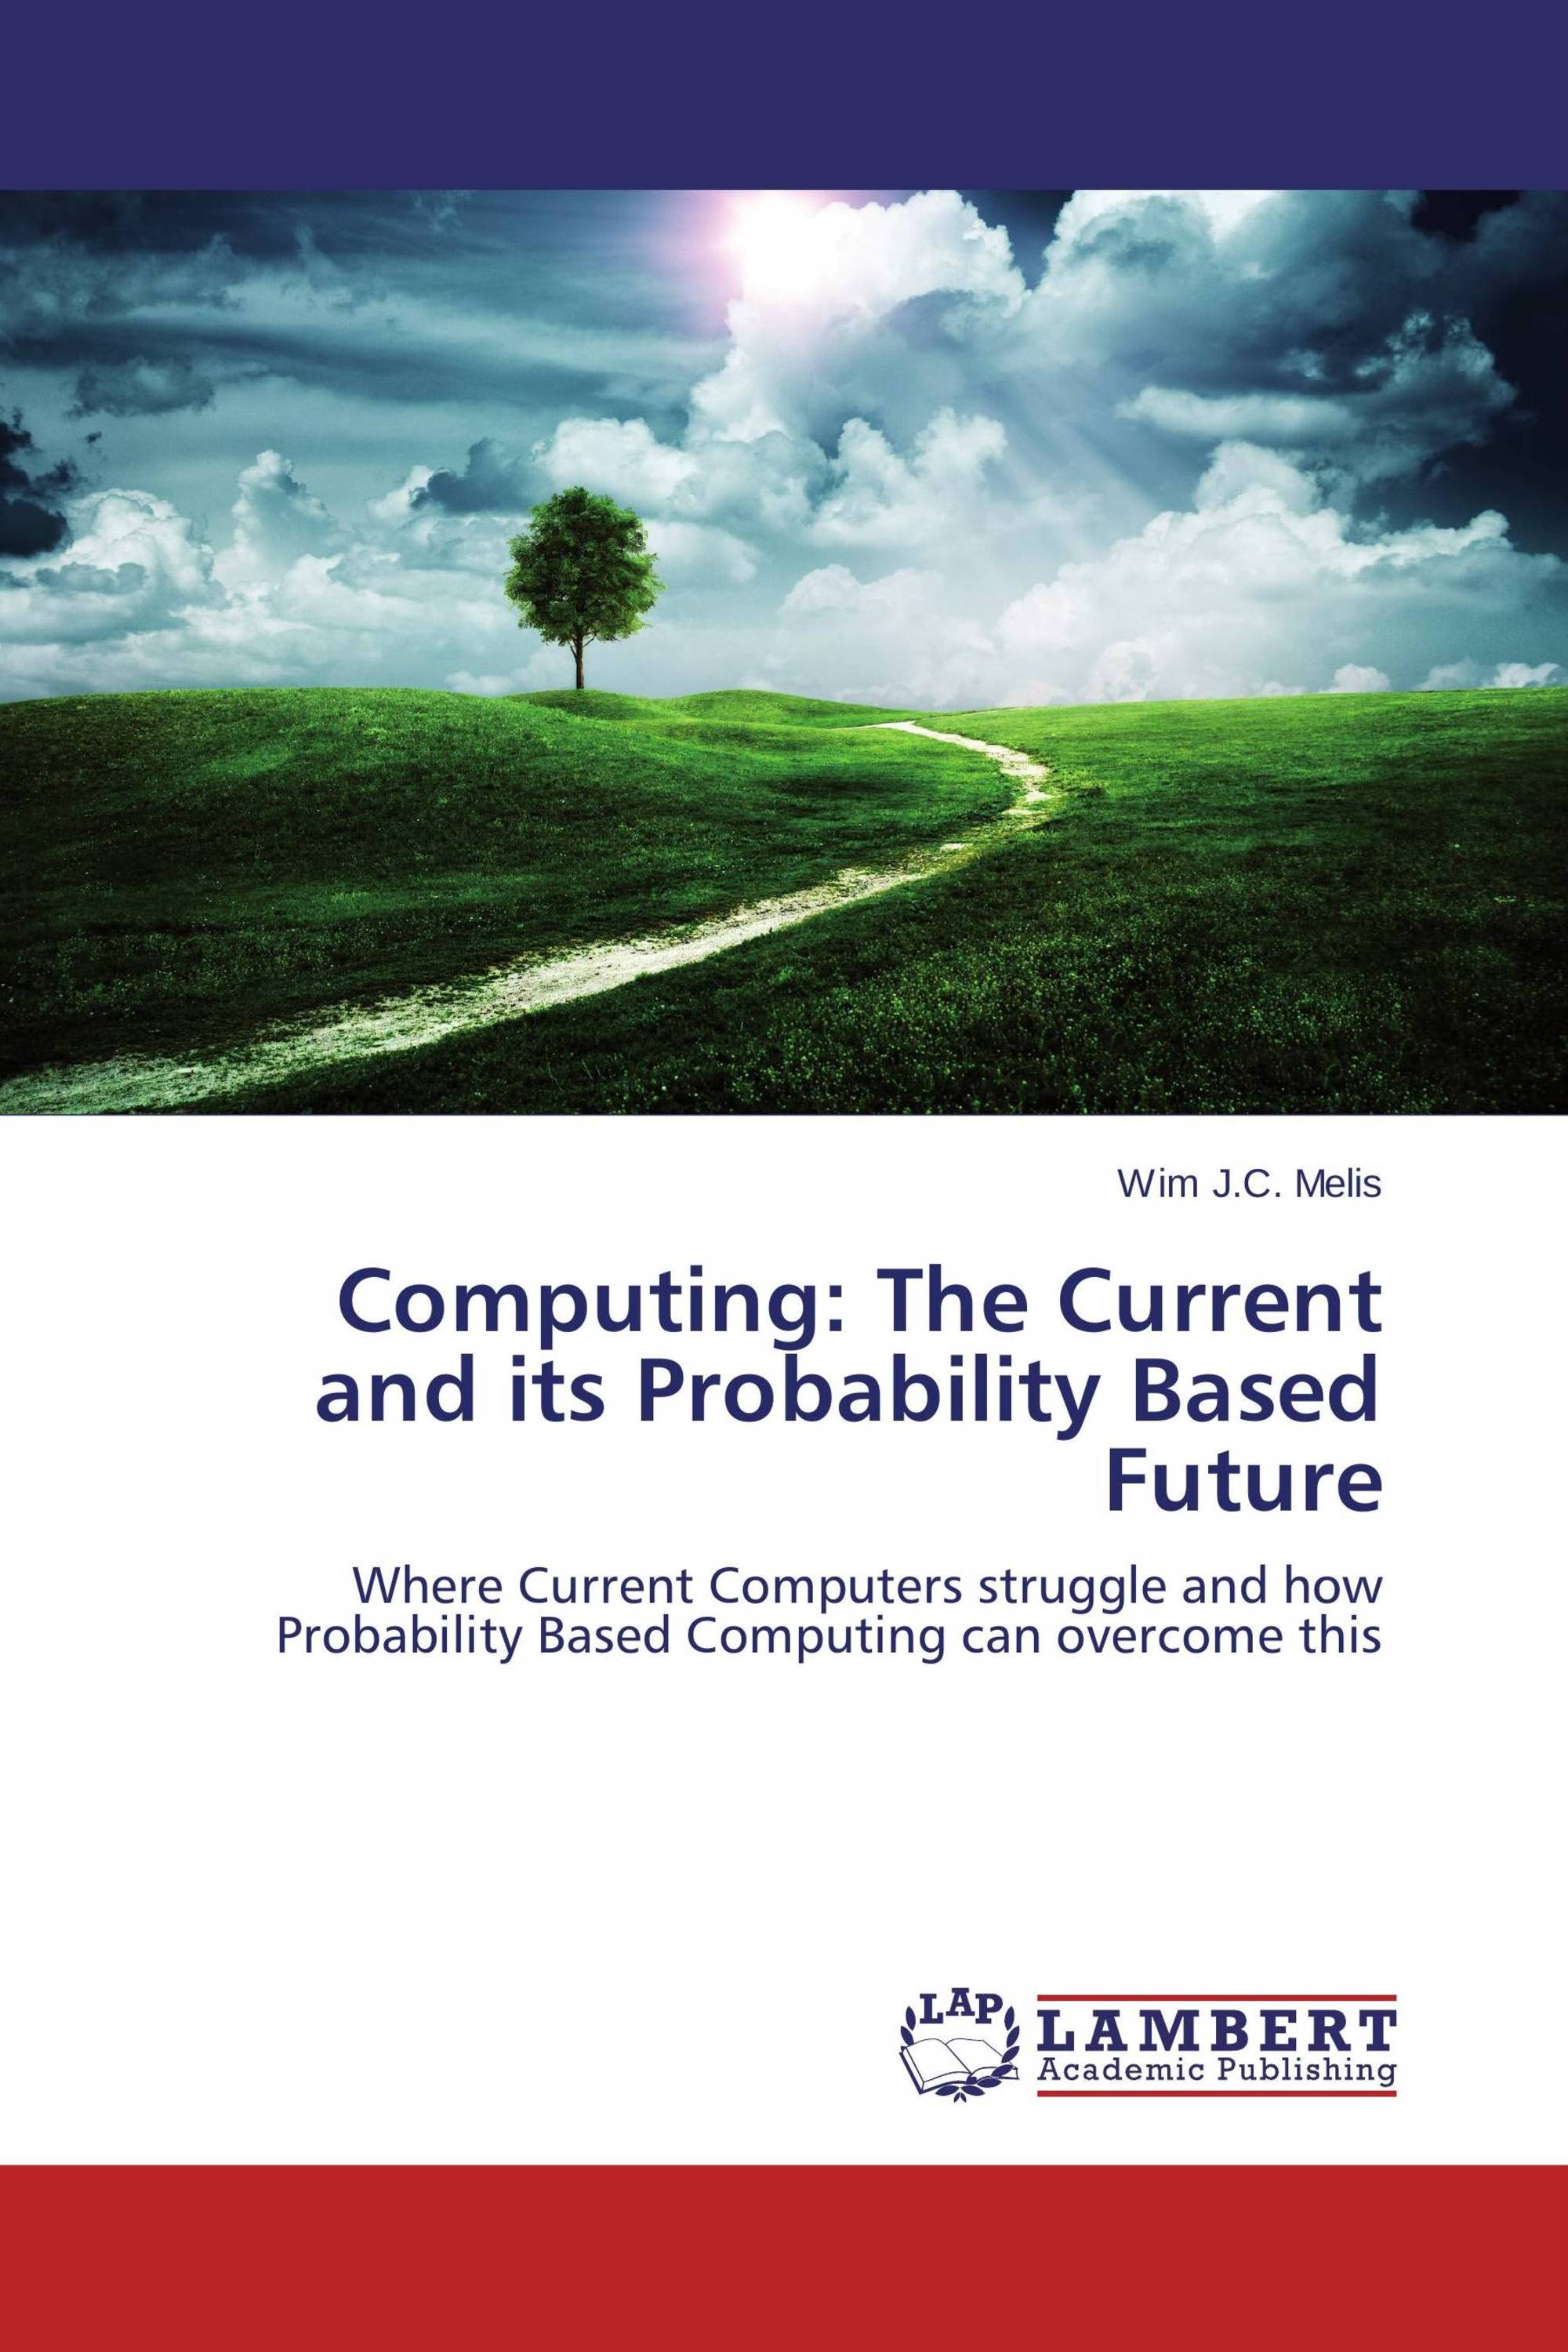 Computing: The Current and its Probability Based Future